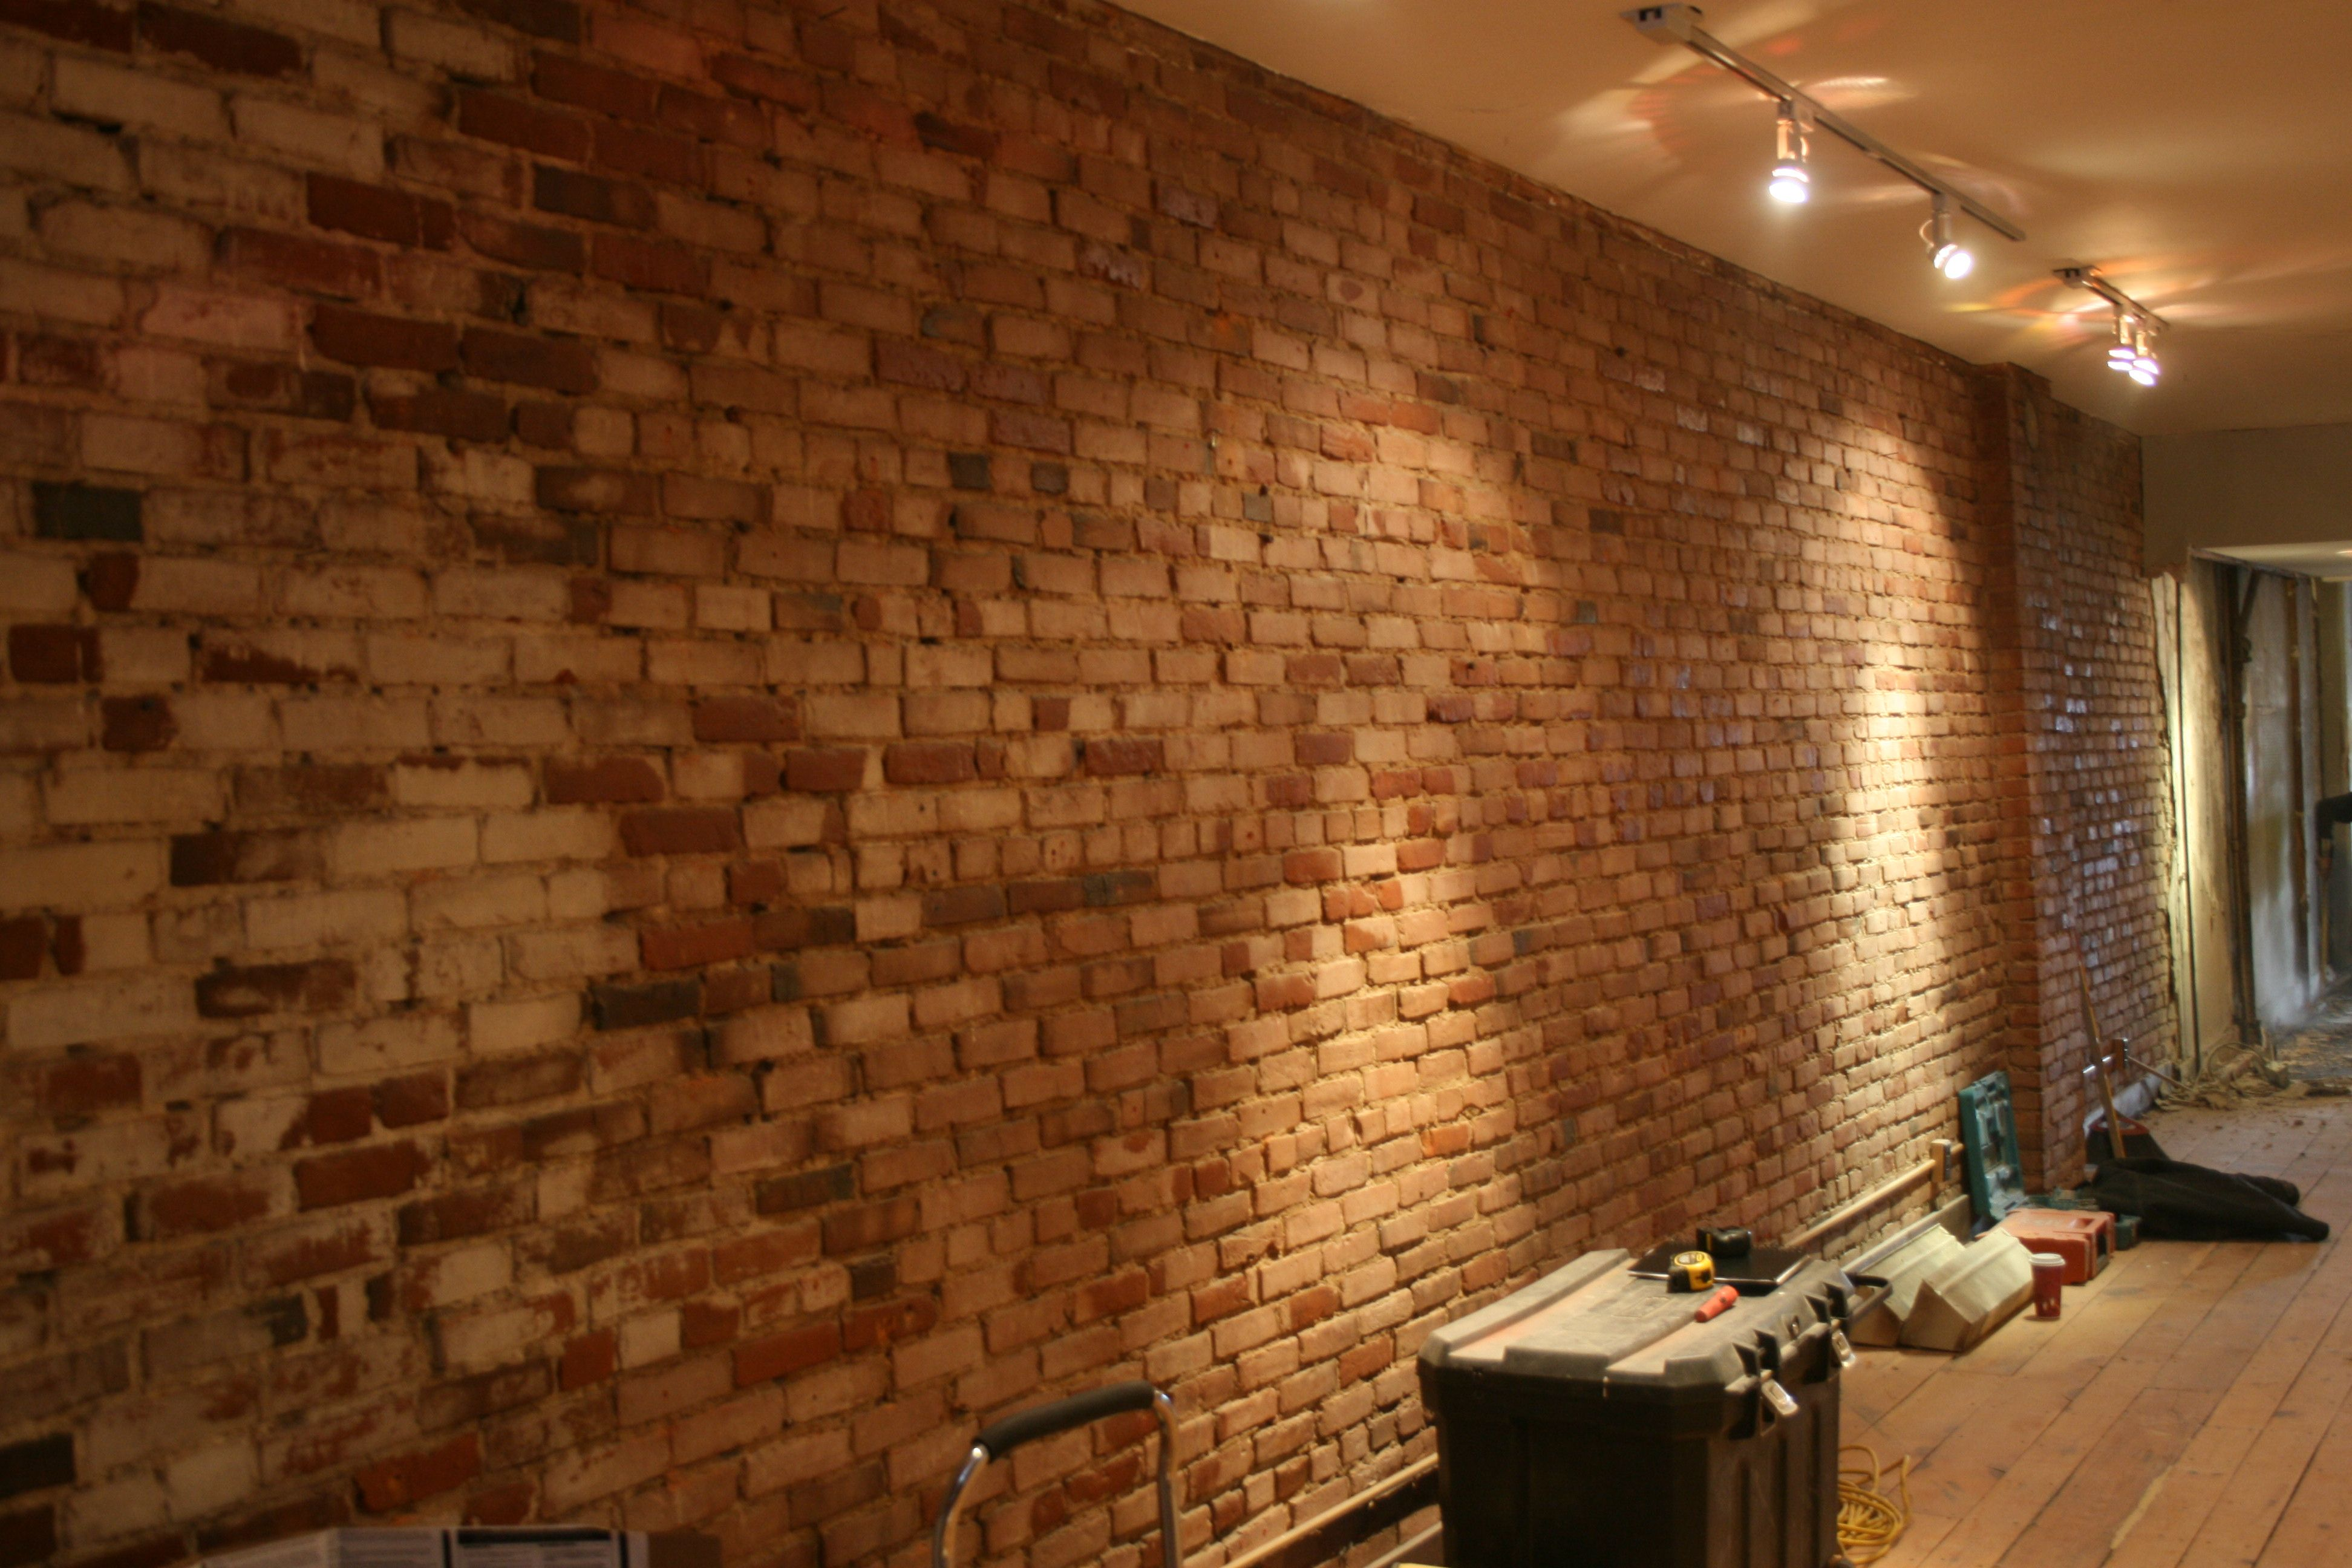 All The Dry Wall Plaster And Lathe Is Down Exposing Vintage Red Brick Walls And Earthen Textures Red Brick Walls Brick Wall Red Bricks